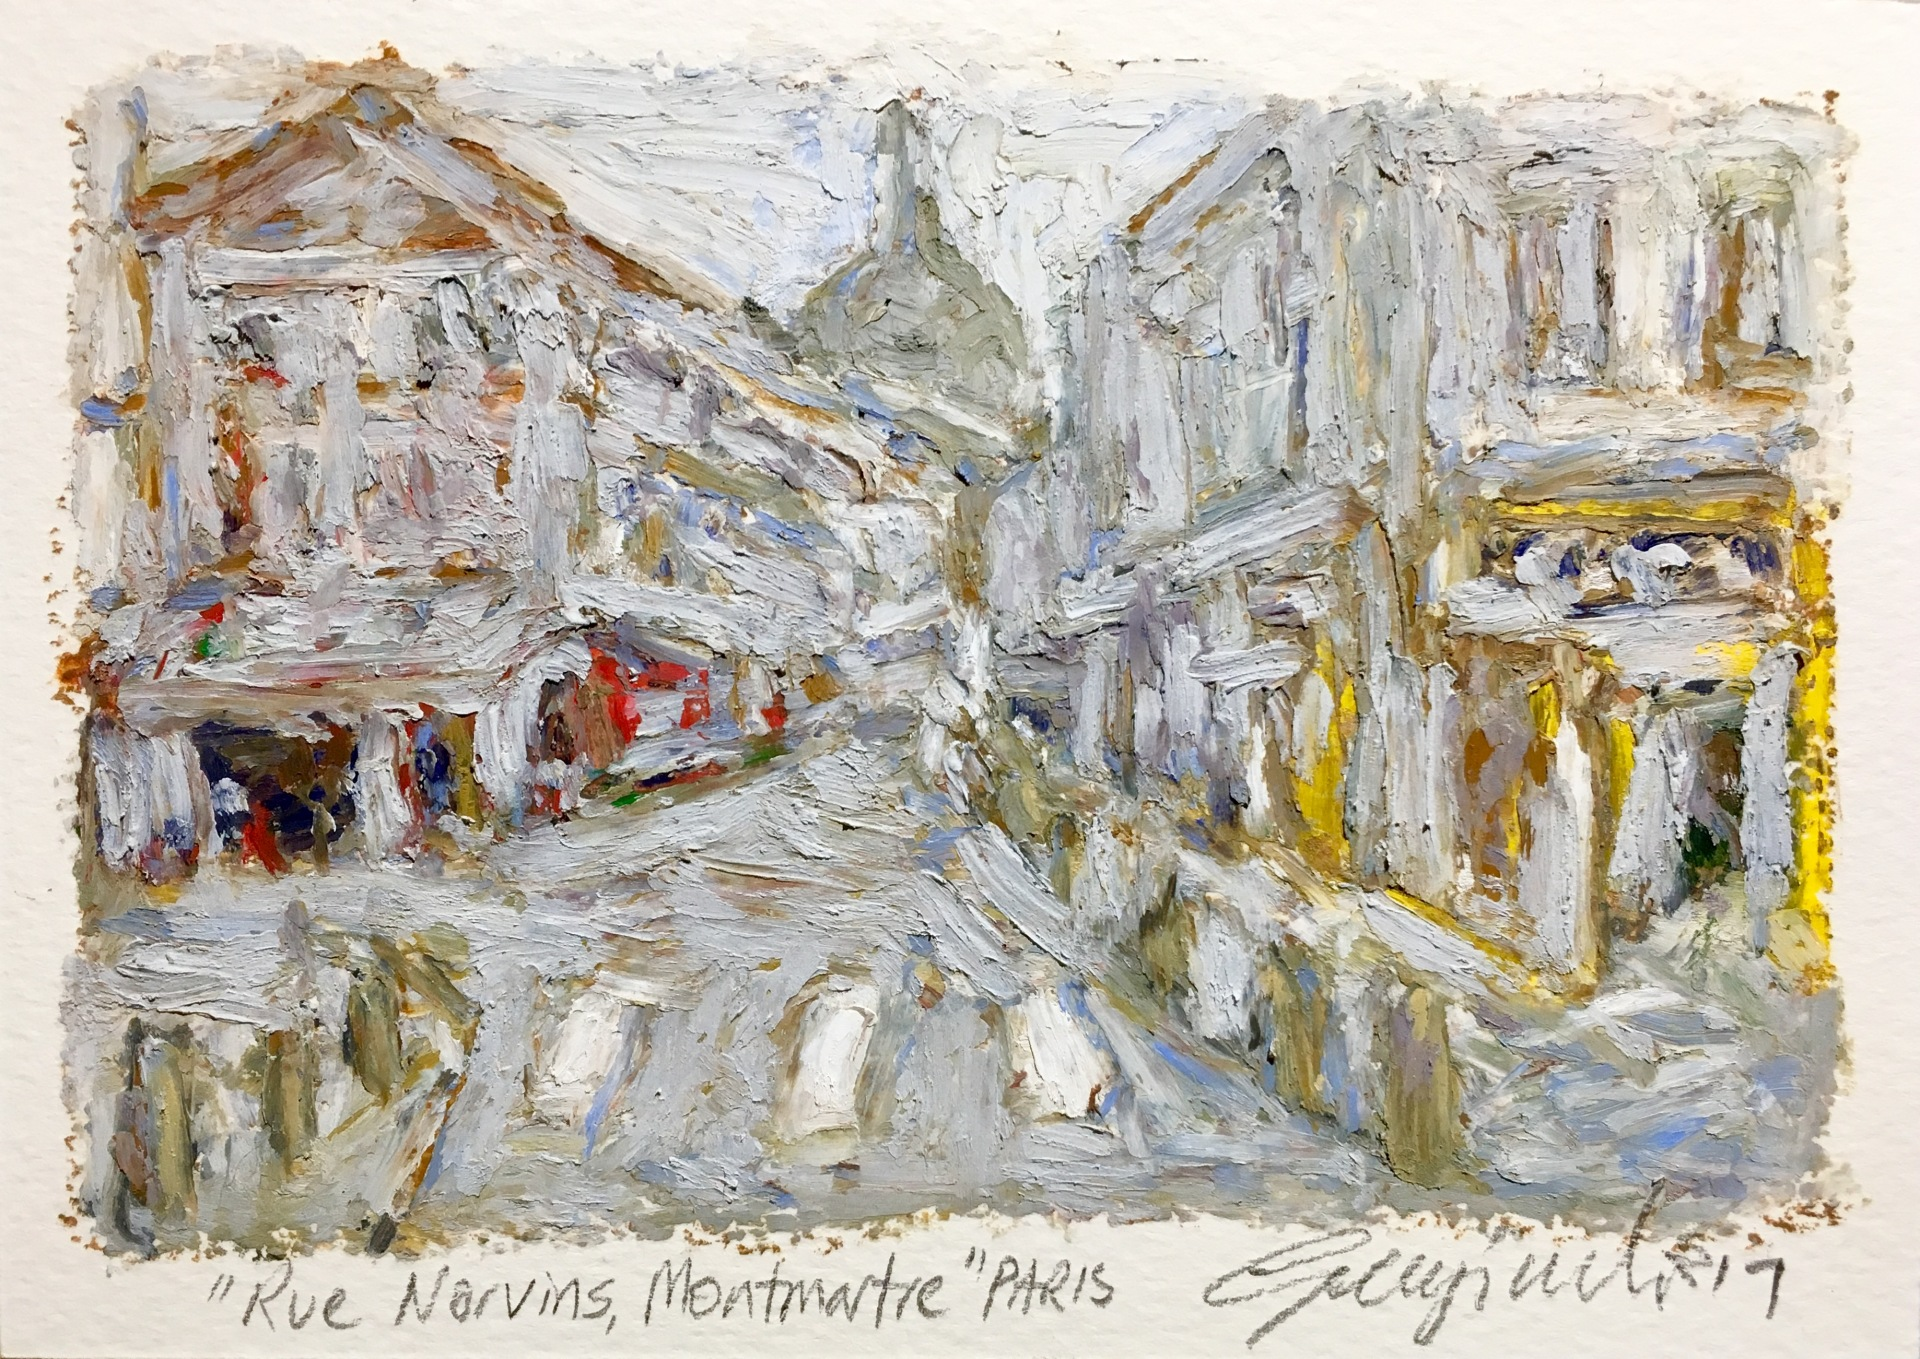 Rue Norvins Montmartre Paris (SOLD)